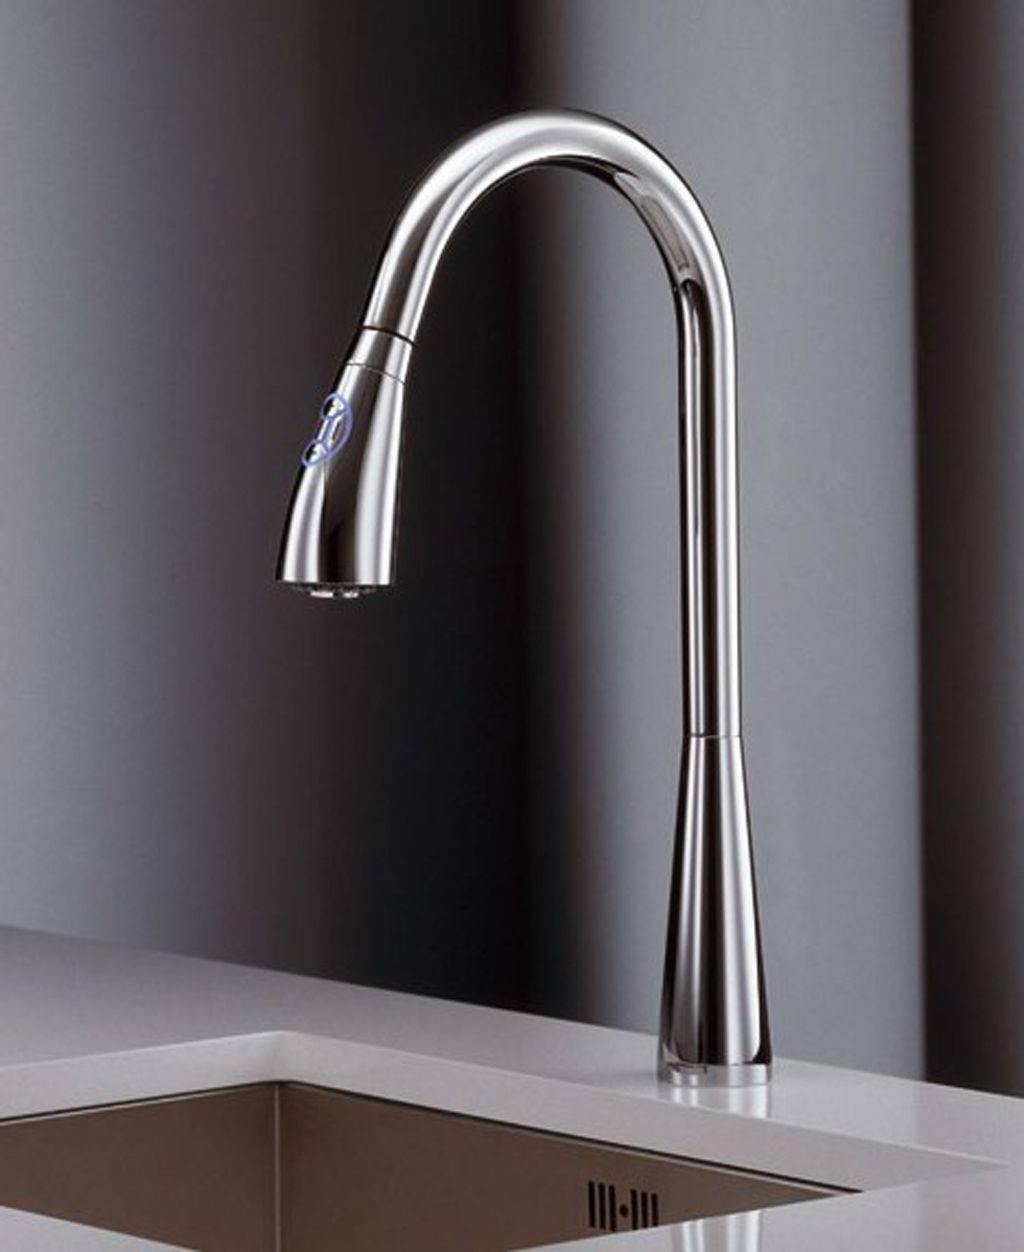 modern kitchen faucets The Modern Kitchen Faucets is minimalist and pure design with sometimes daring combinations